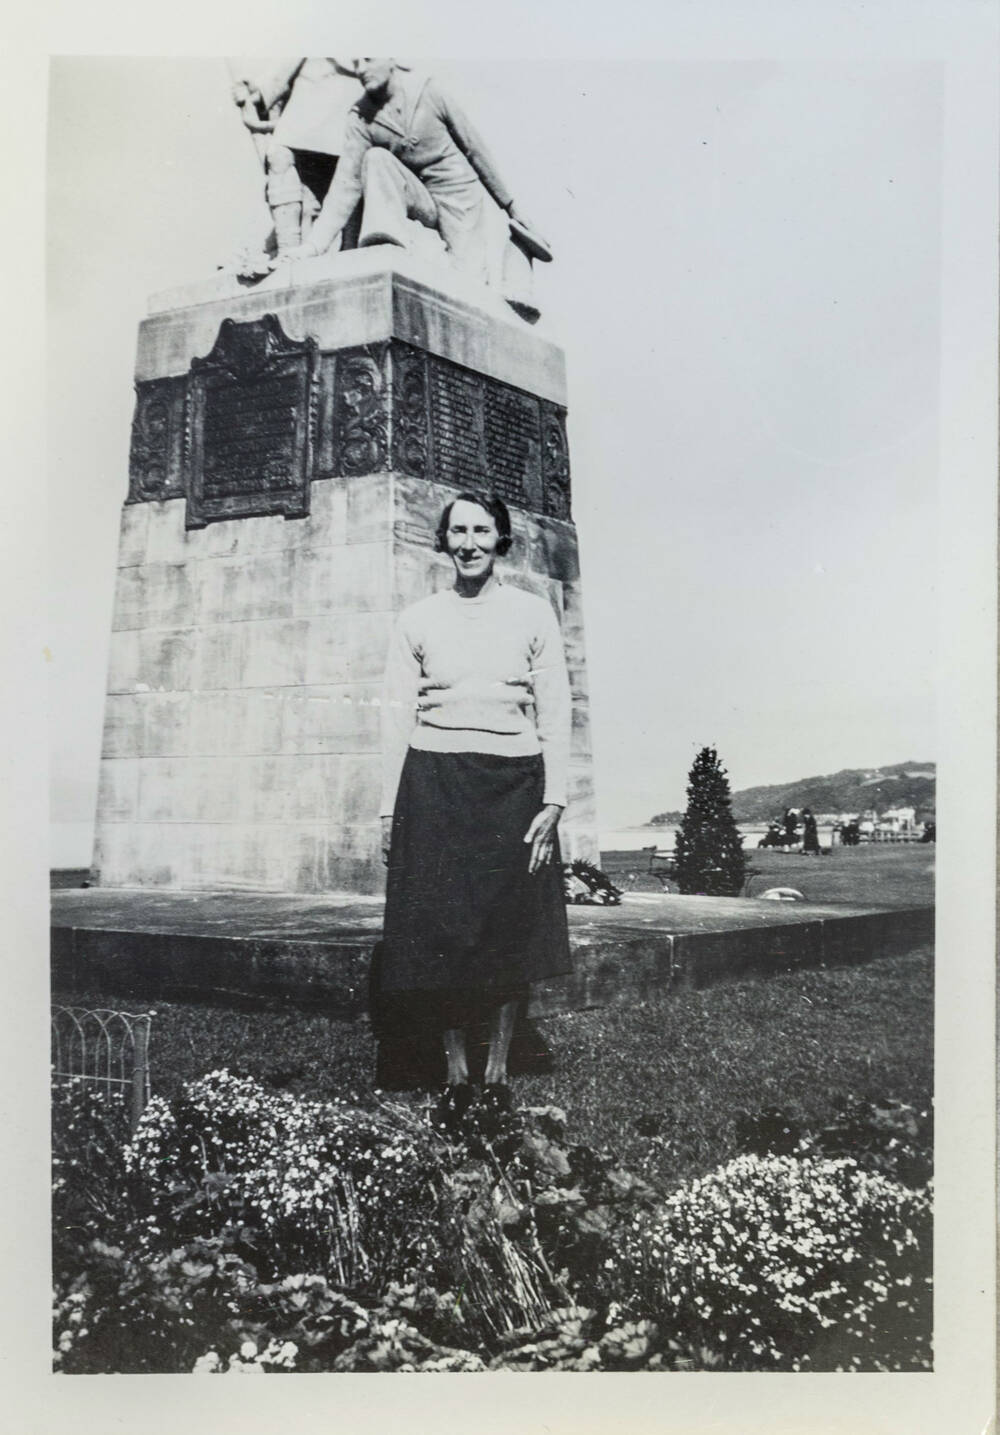 A black and white photo of a woman standing in front of a war memorial comprised of a square stone base with figures on top.